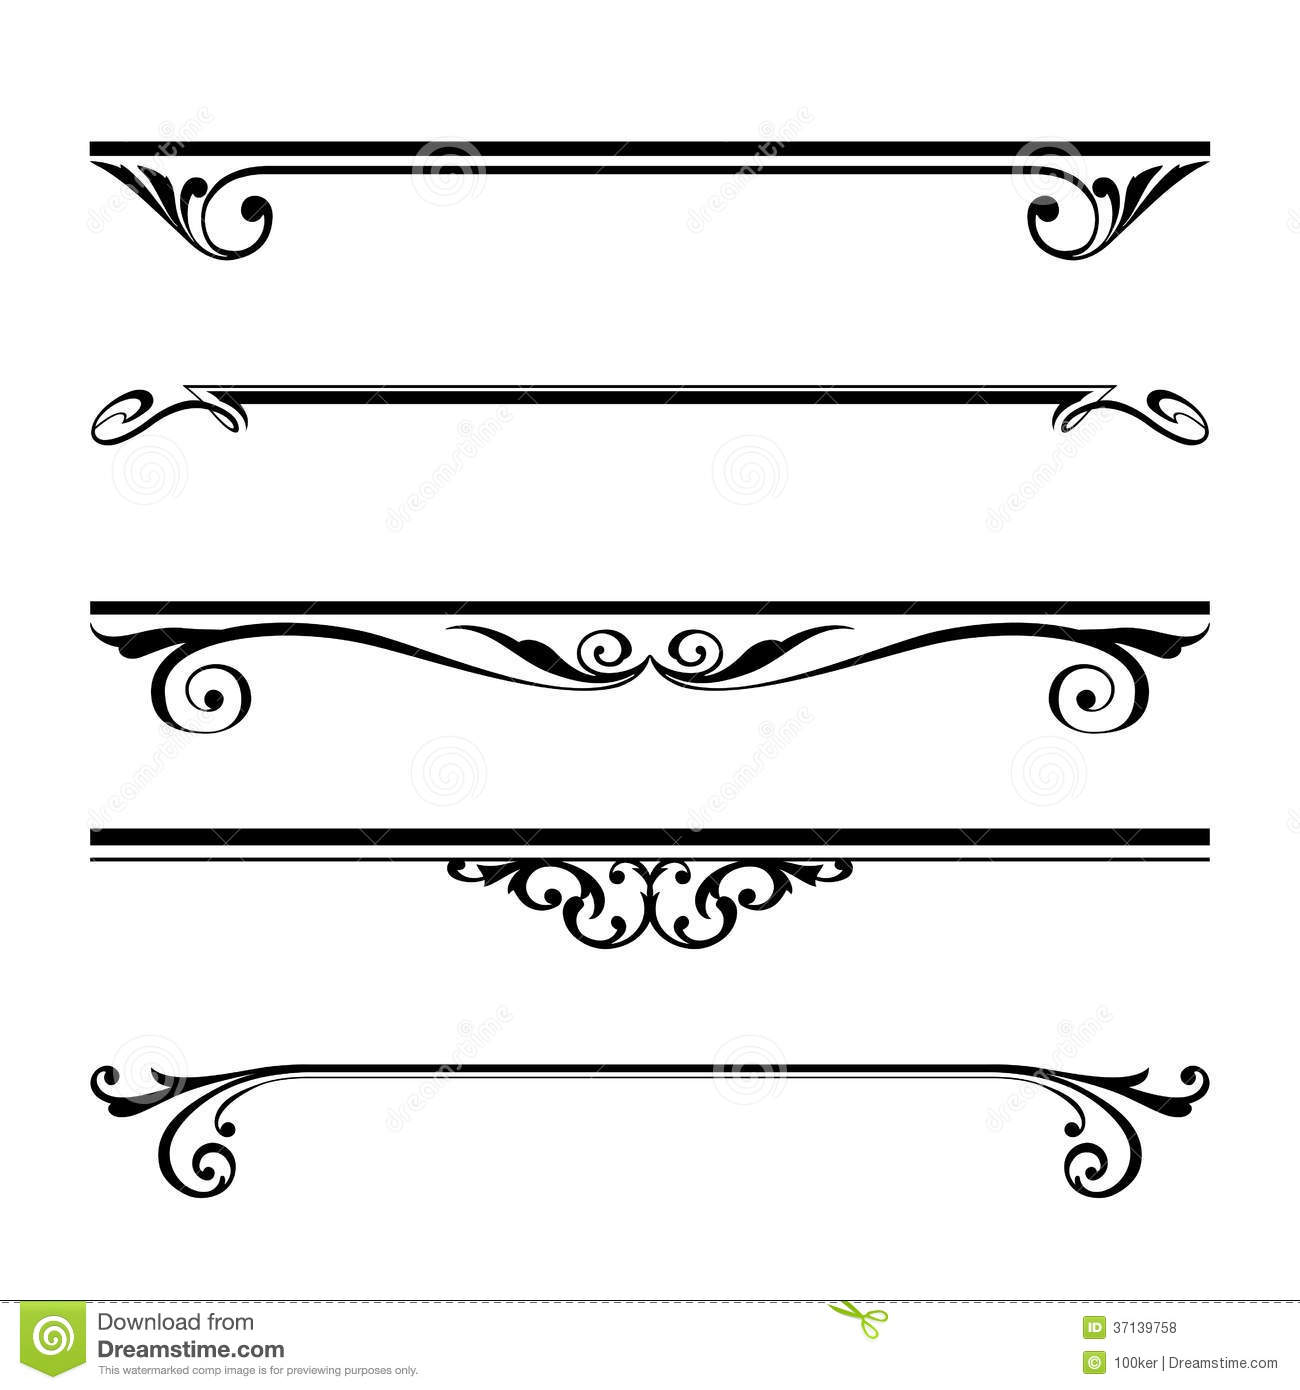 Drawing Vector Lines In Photo : Decorative lines vector images line clip